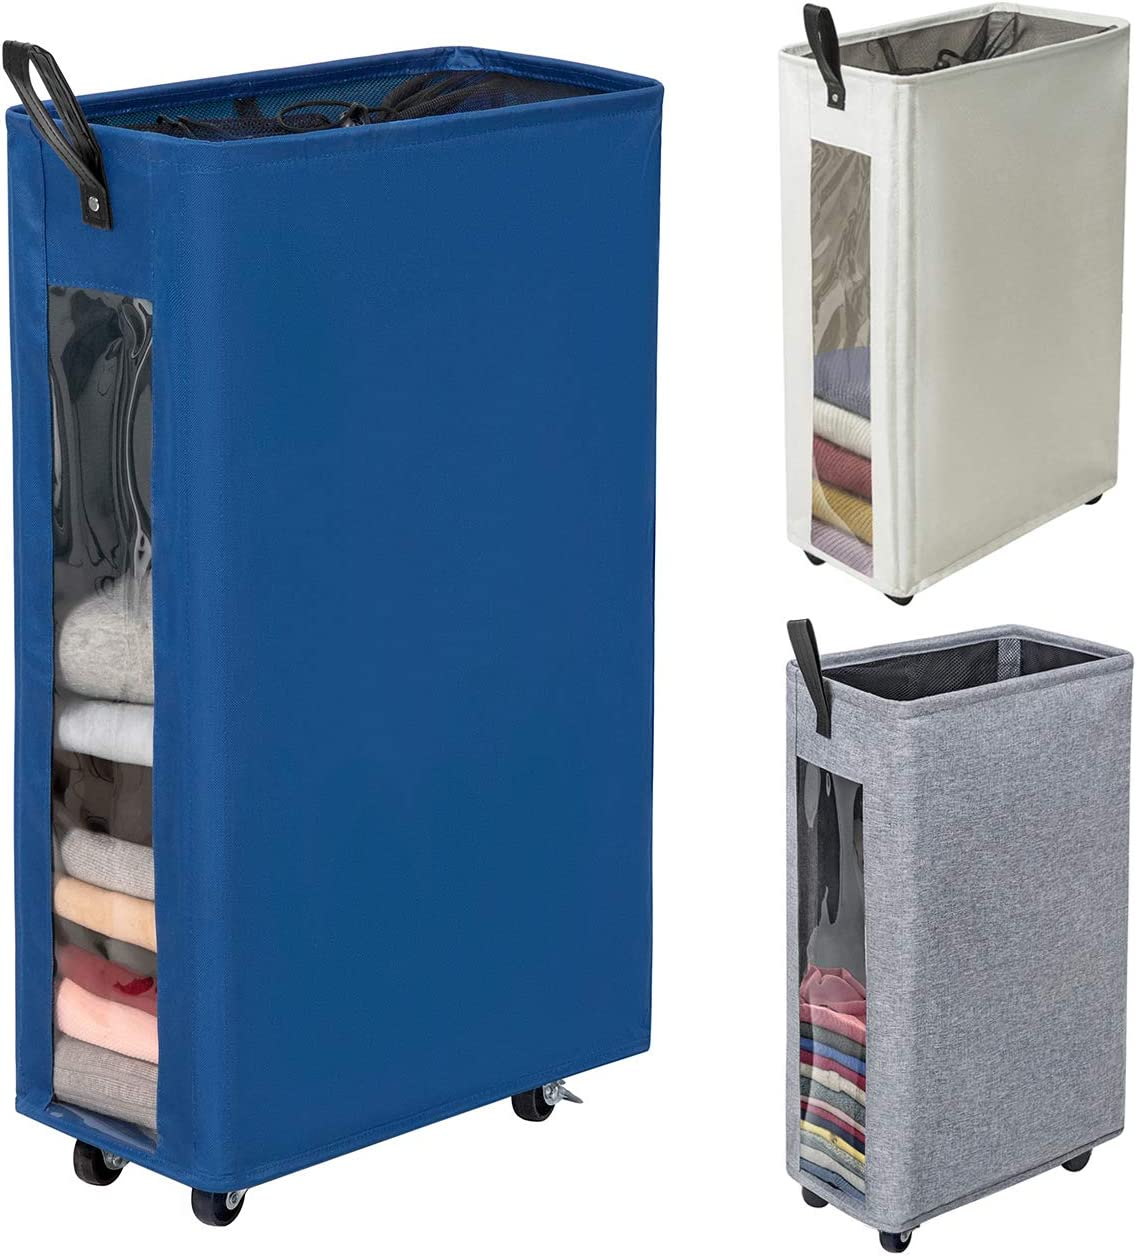 "ZERO JET LAG 27 inches Slim Laundry Hamper Large Tall Laundry Basket on Wheels Clear Window Visible Dirty Clothes Hamper Thin Clothes Storage Standable Corner Bin Handy 16""×8.6""×27"" Blue"